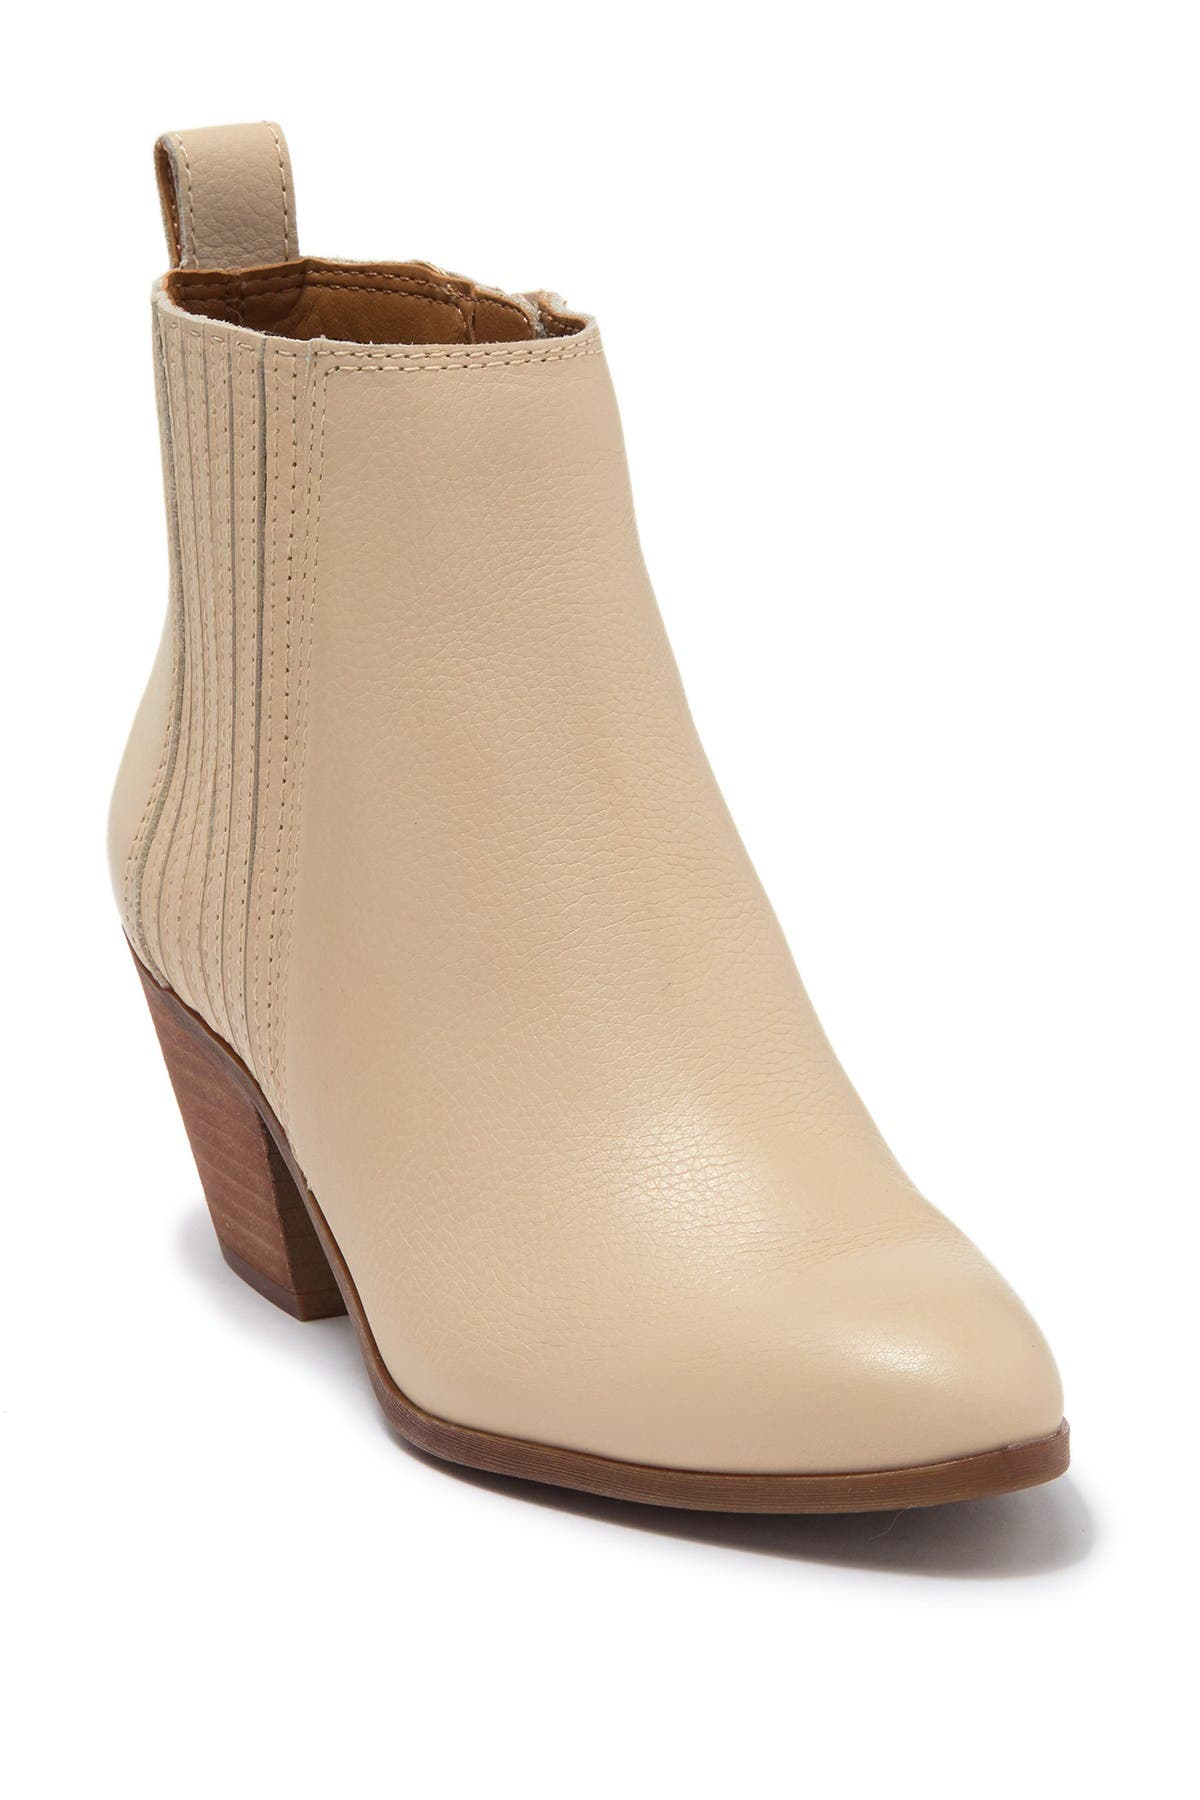 Frye and Co Womens Jacy Chelsea Boot